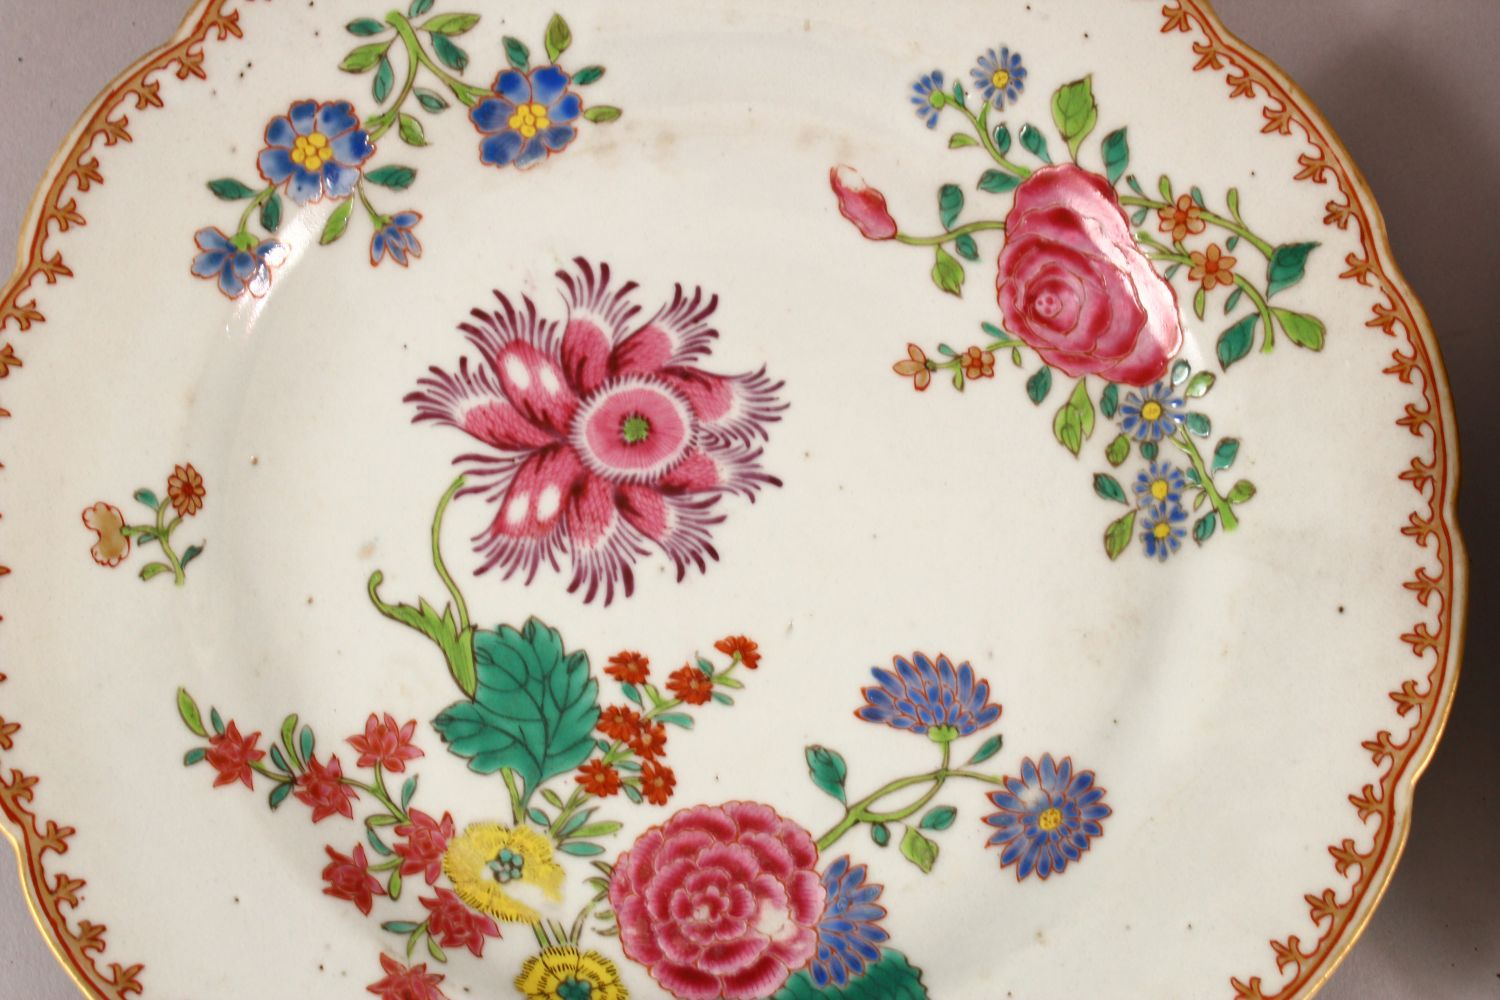 A SET OF FOUR 18TH / 19TH CENTURY CHINESE FAMILLE ROSE PLATES, with floral decoration, 23cm - Image 5 of 6